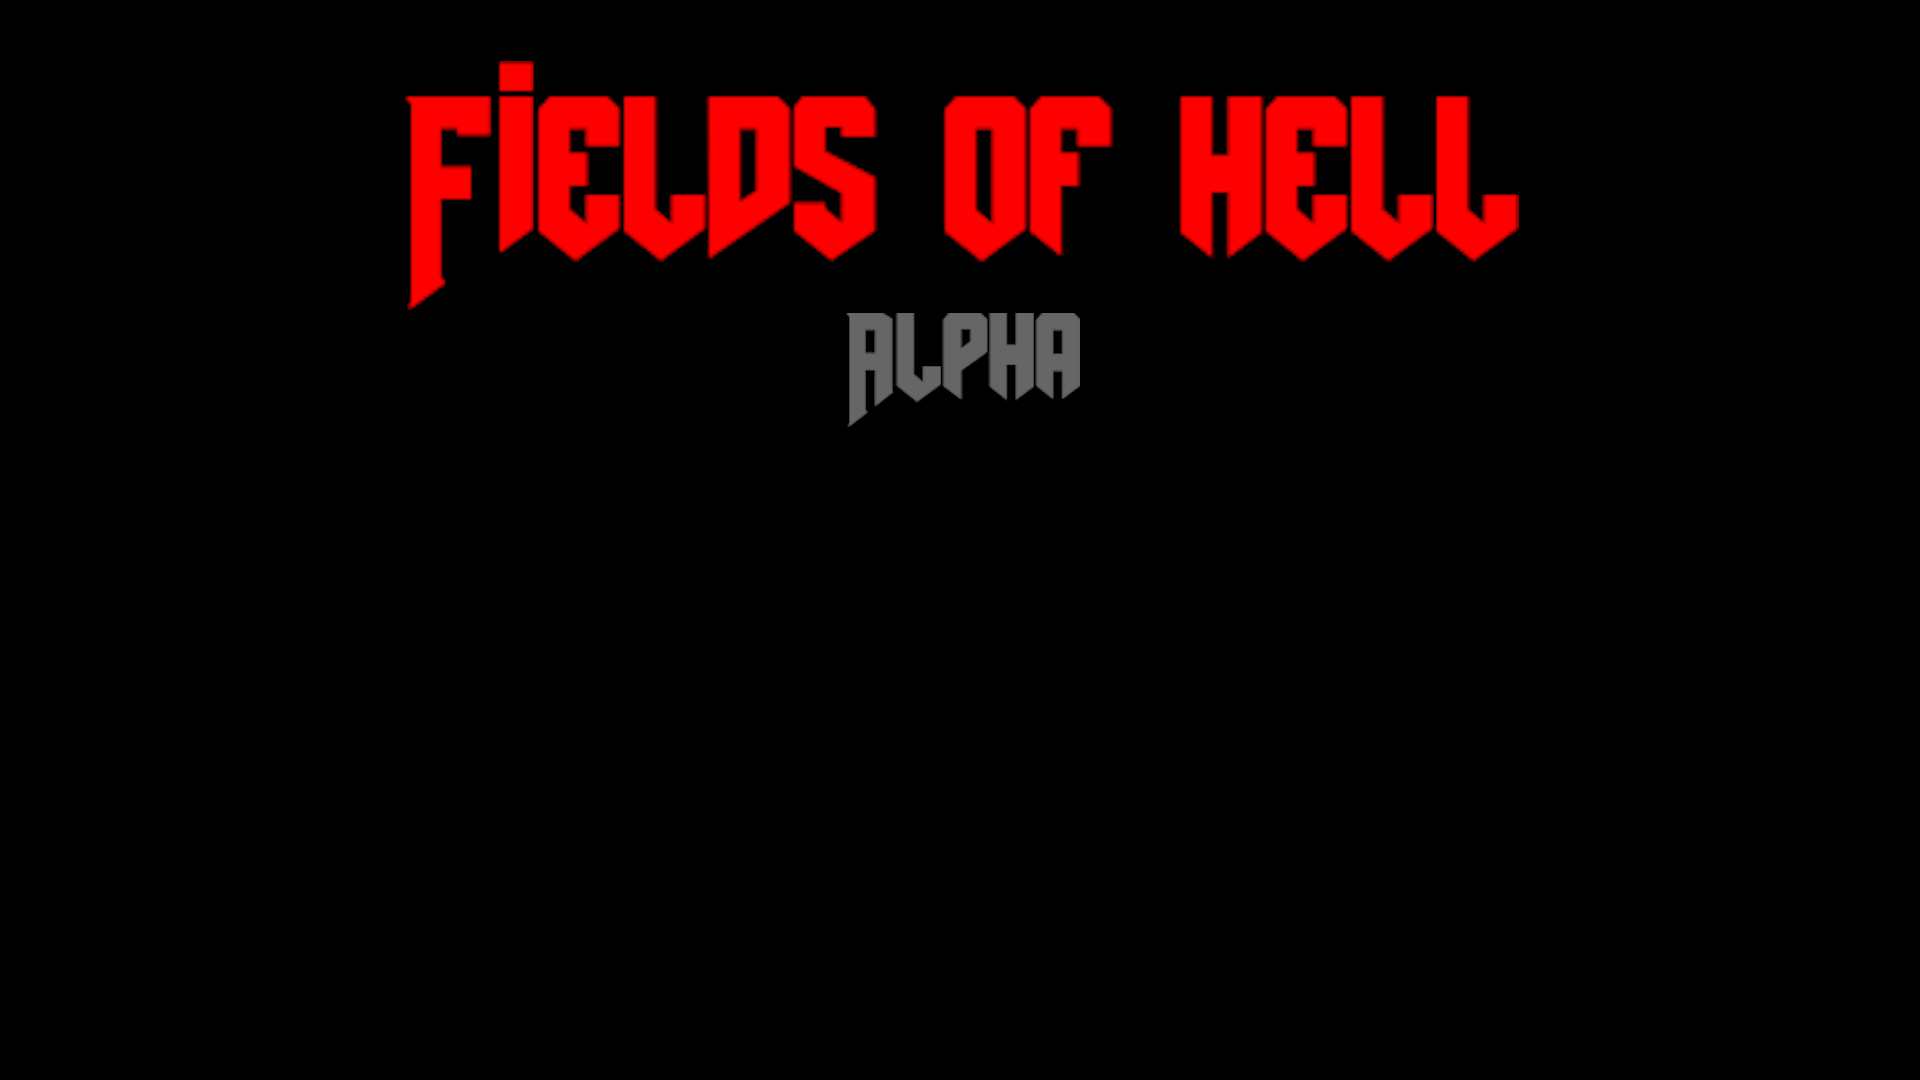 Fields of hellalpha